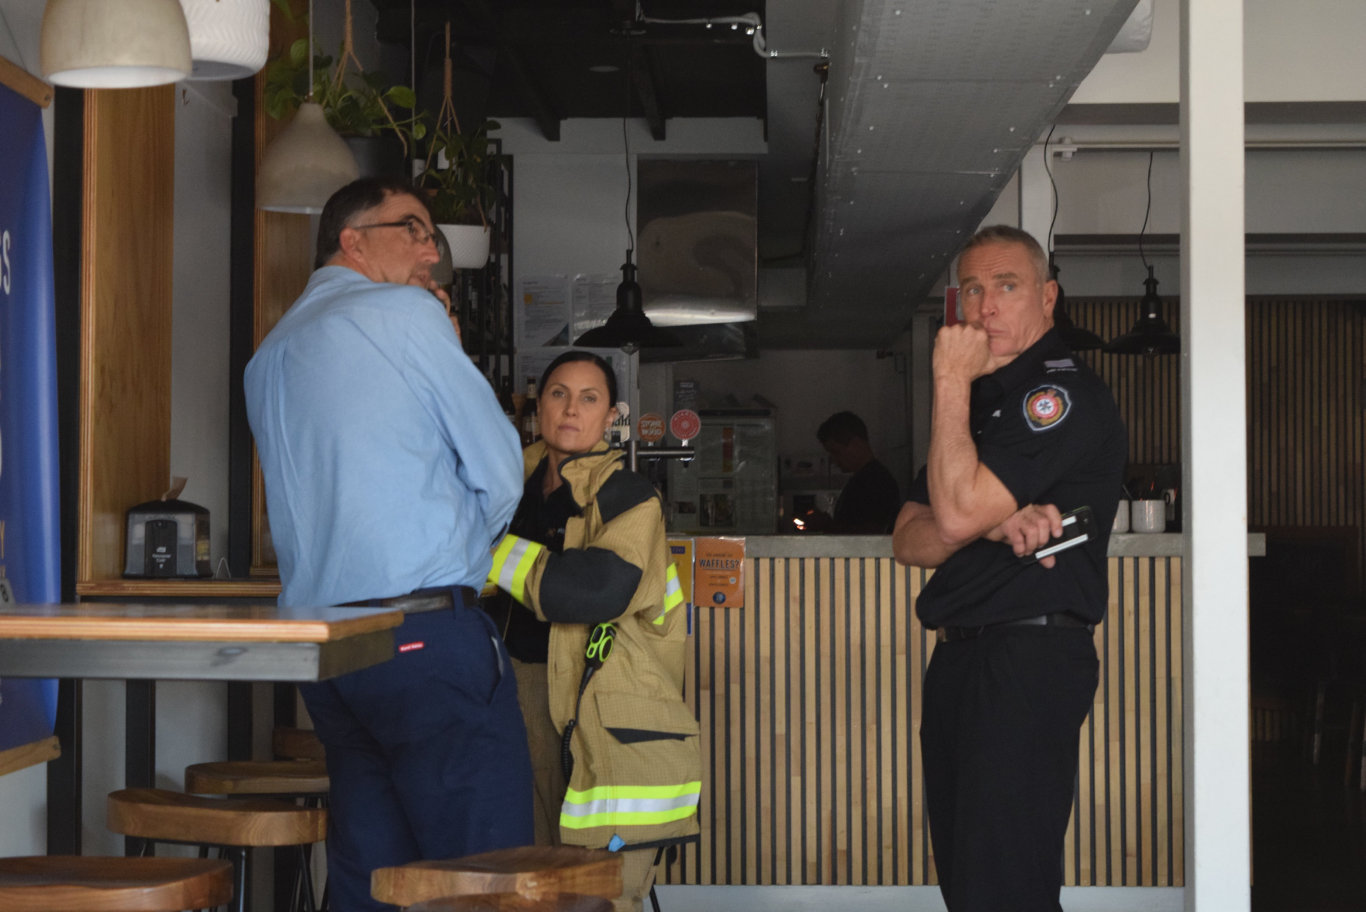 Maroochydore Station Officer Vanessa Madge and her crew responded to a gas explosion at Downtown Burgers on Ocean St, Maroochydore.